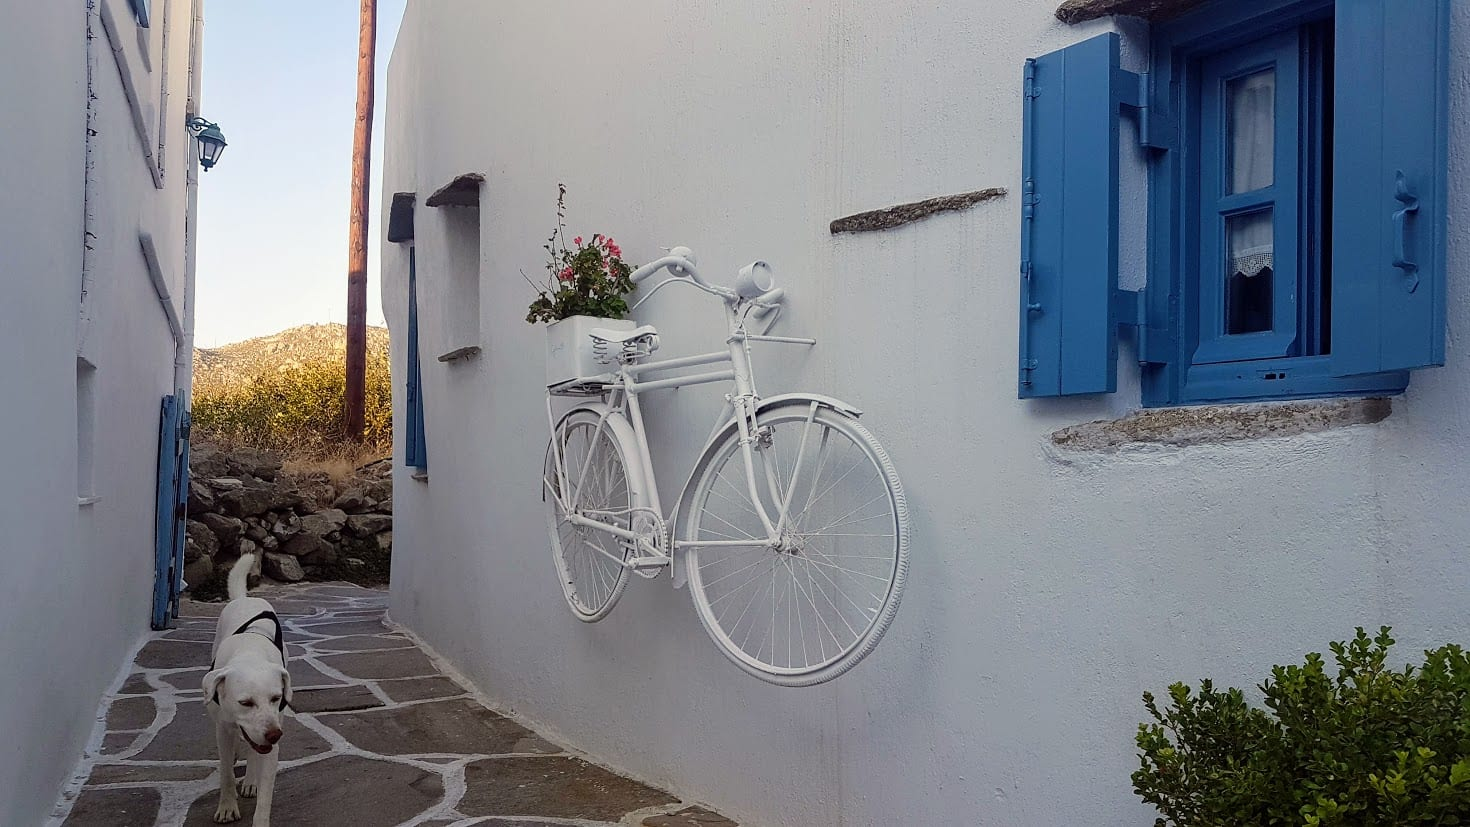 A side street of one of the villages of Tinos